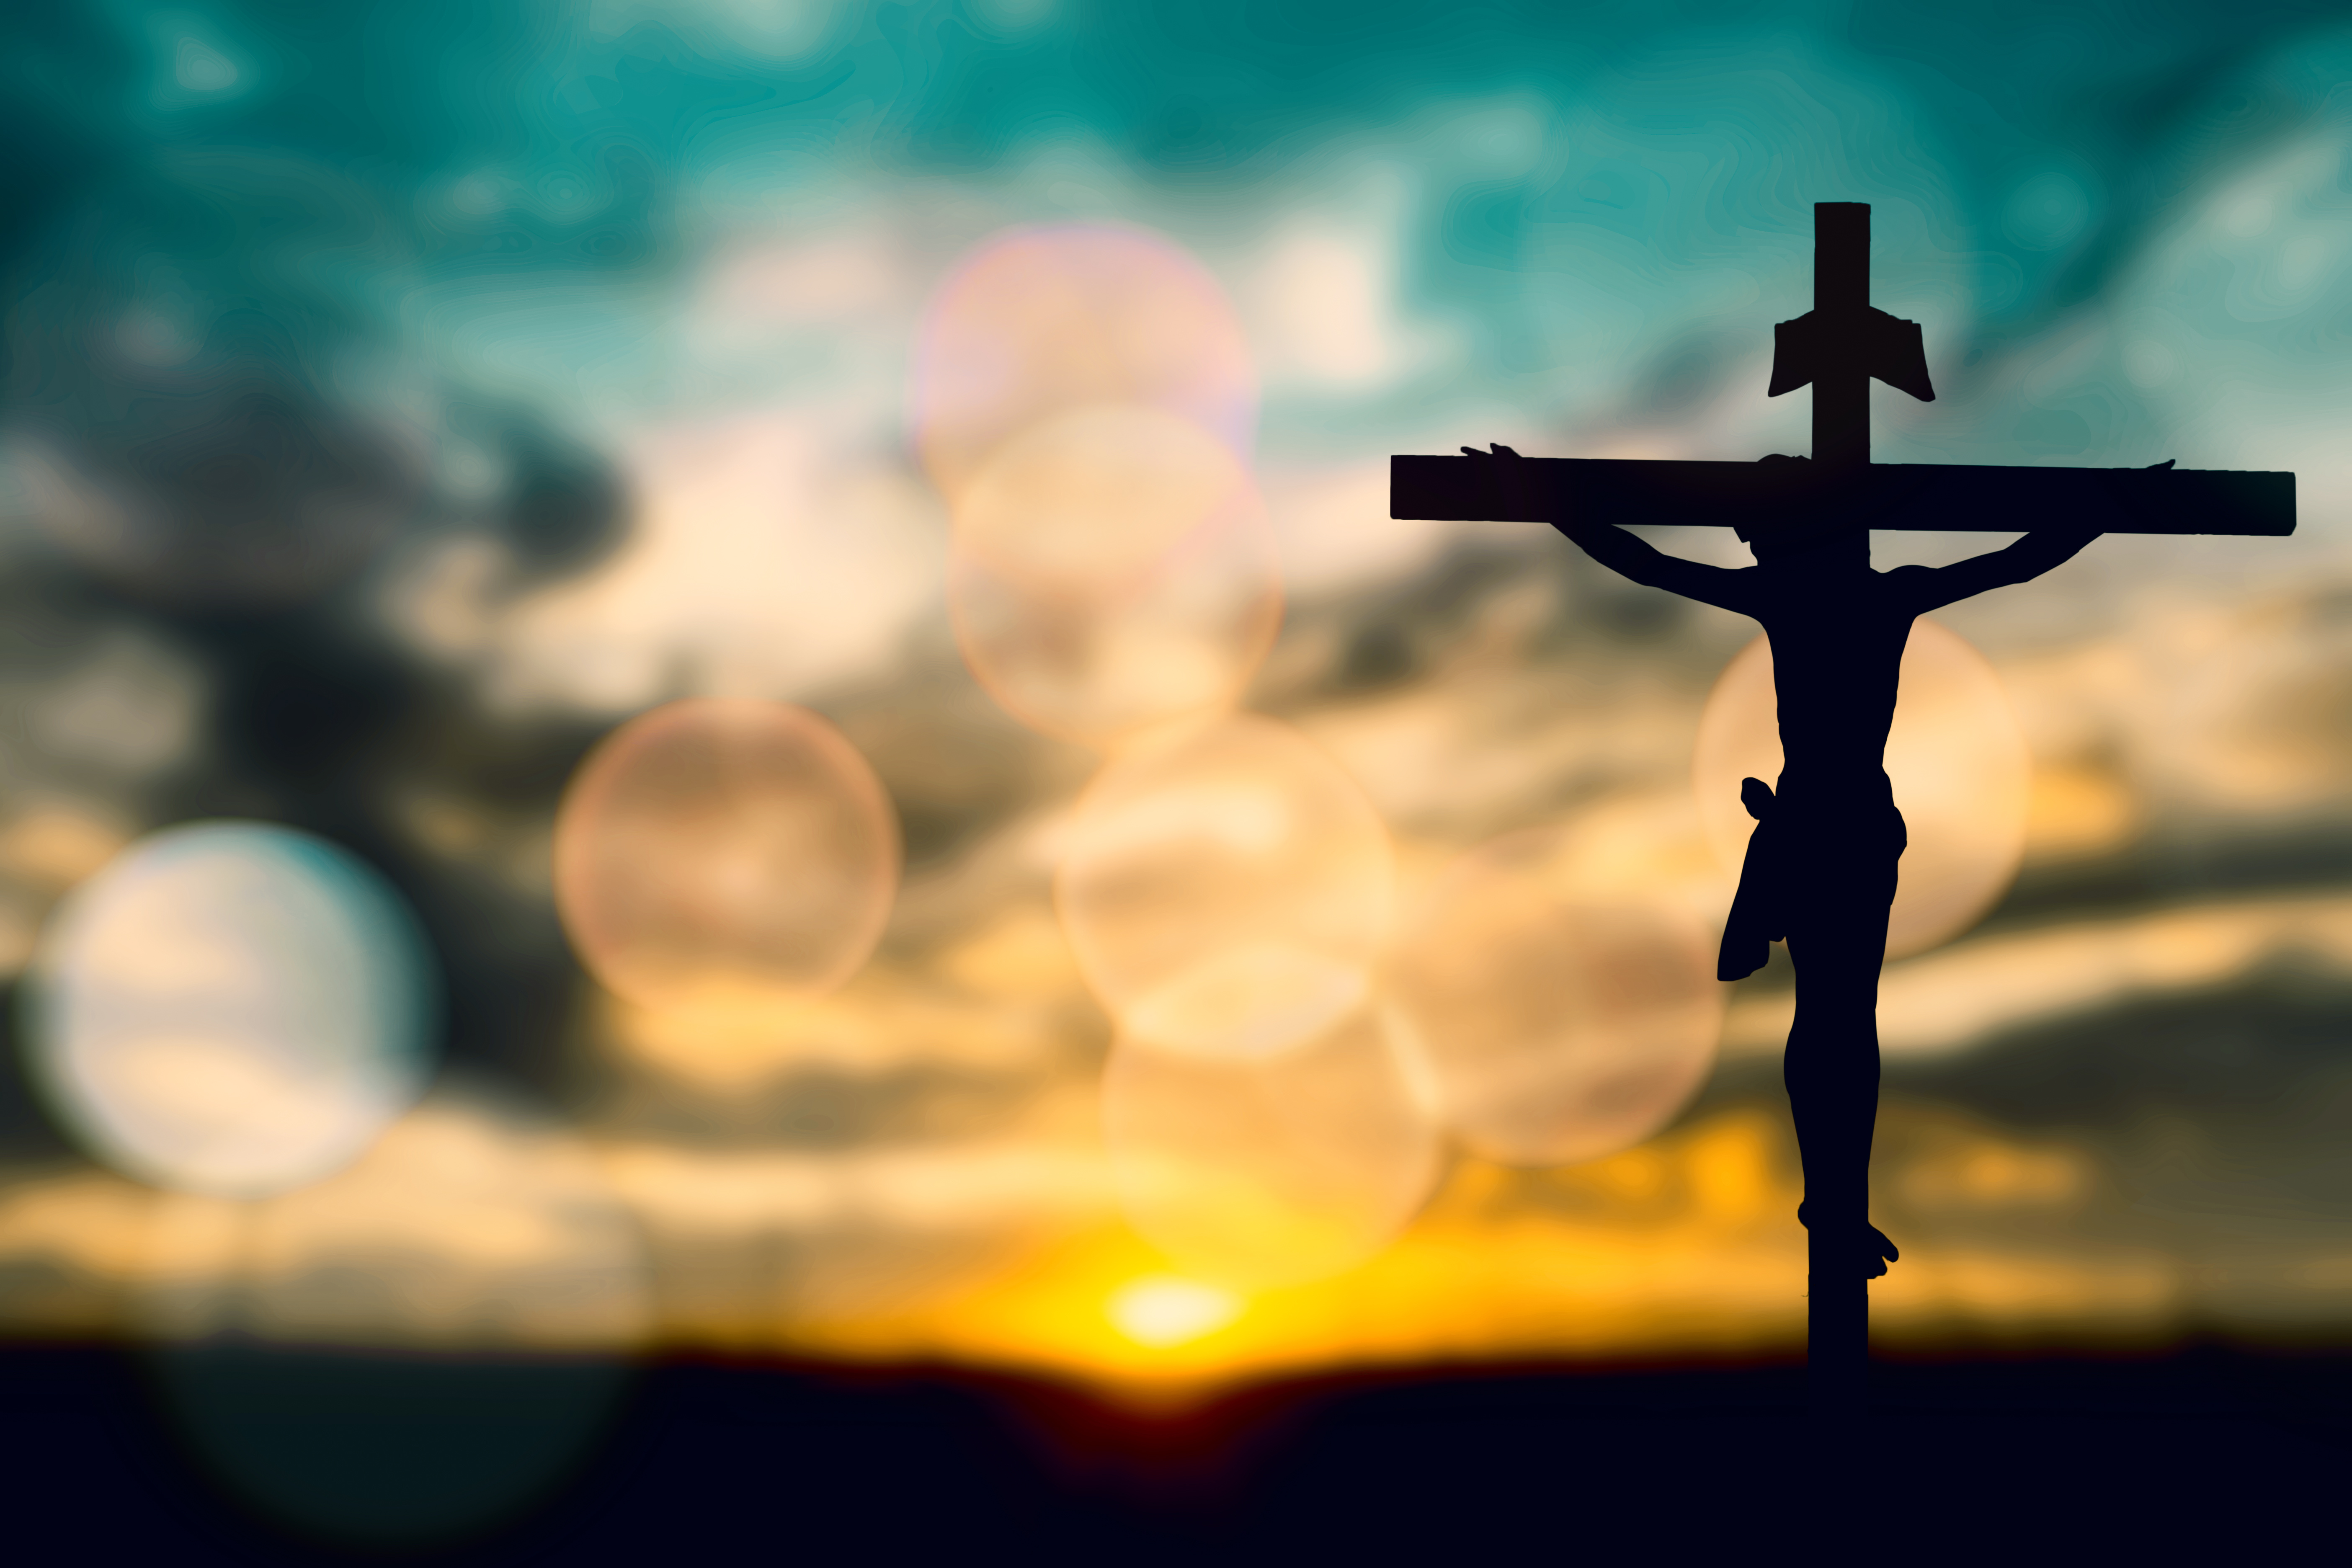 Cross Pictures 3 reasons to question & rethink your theology of the cross